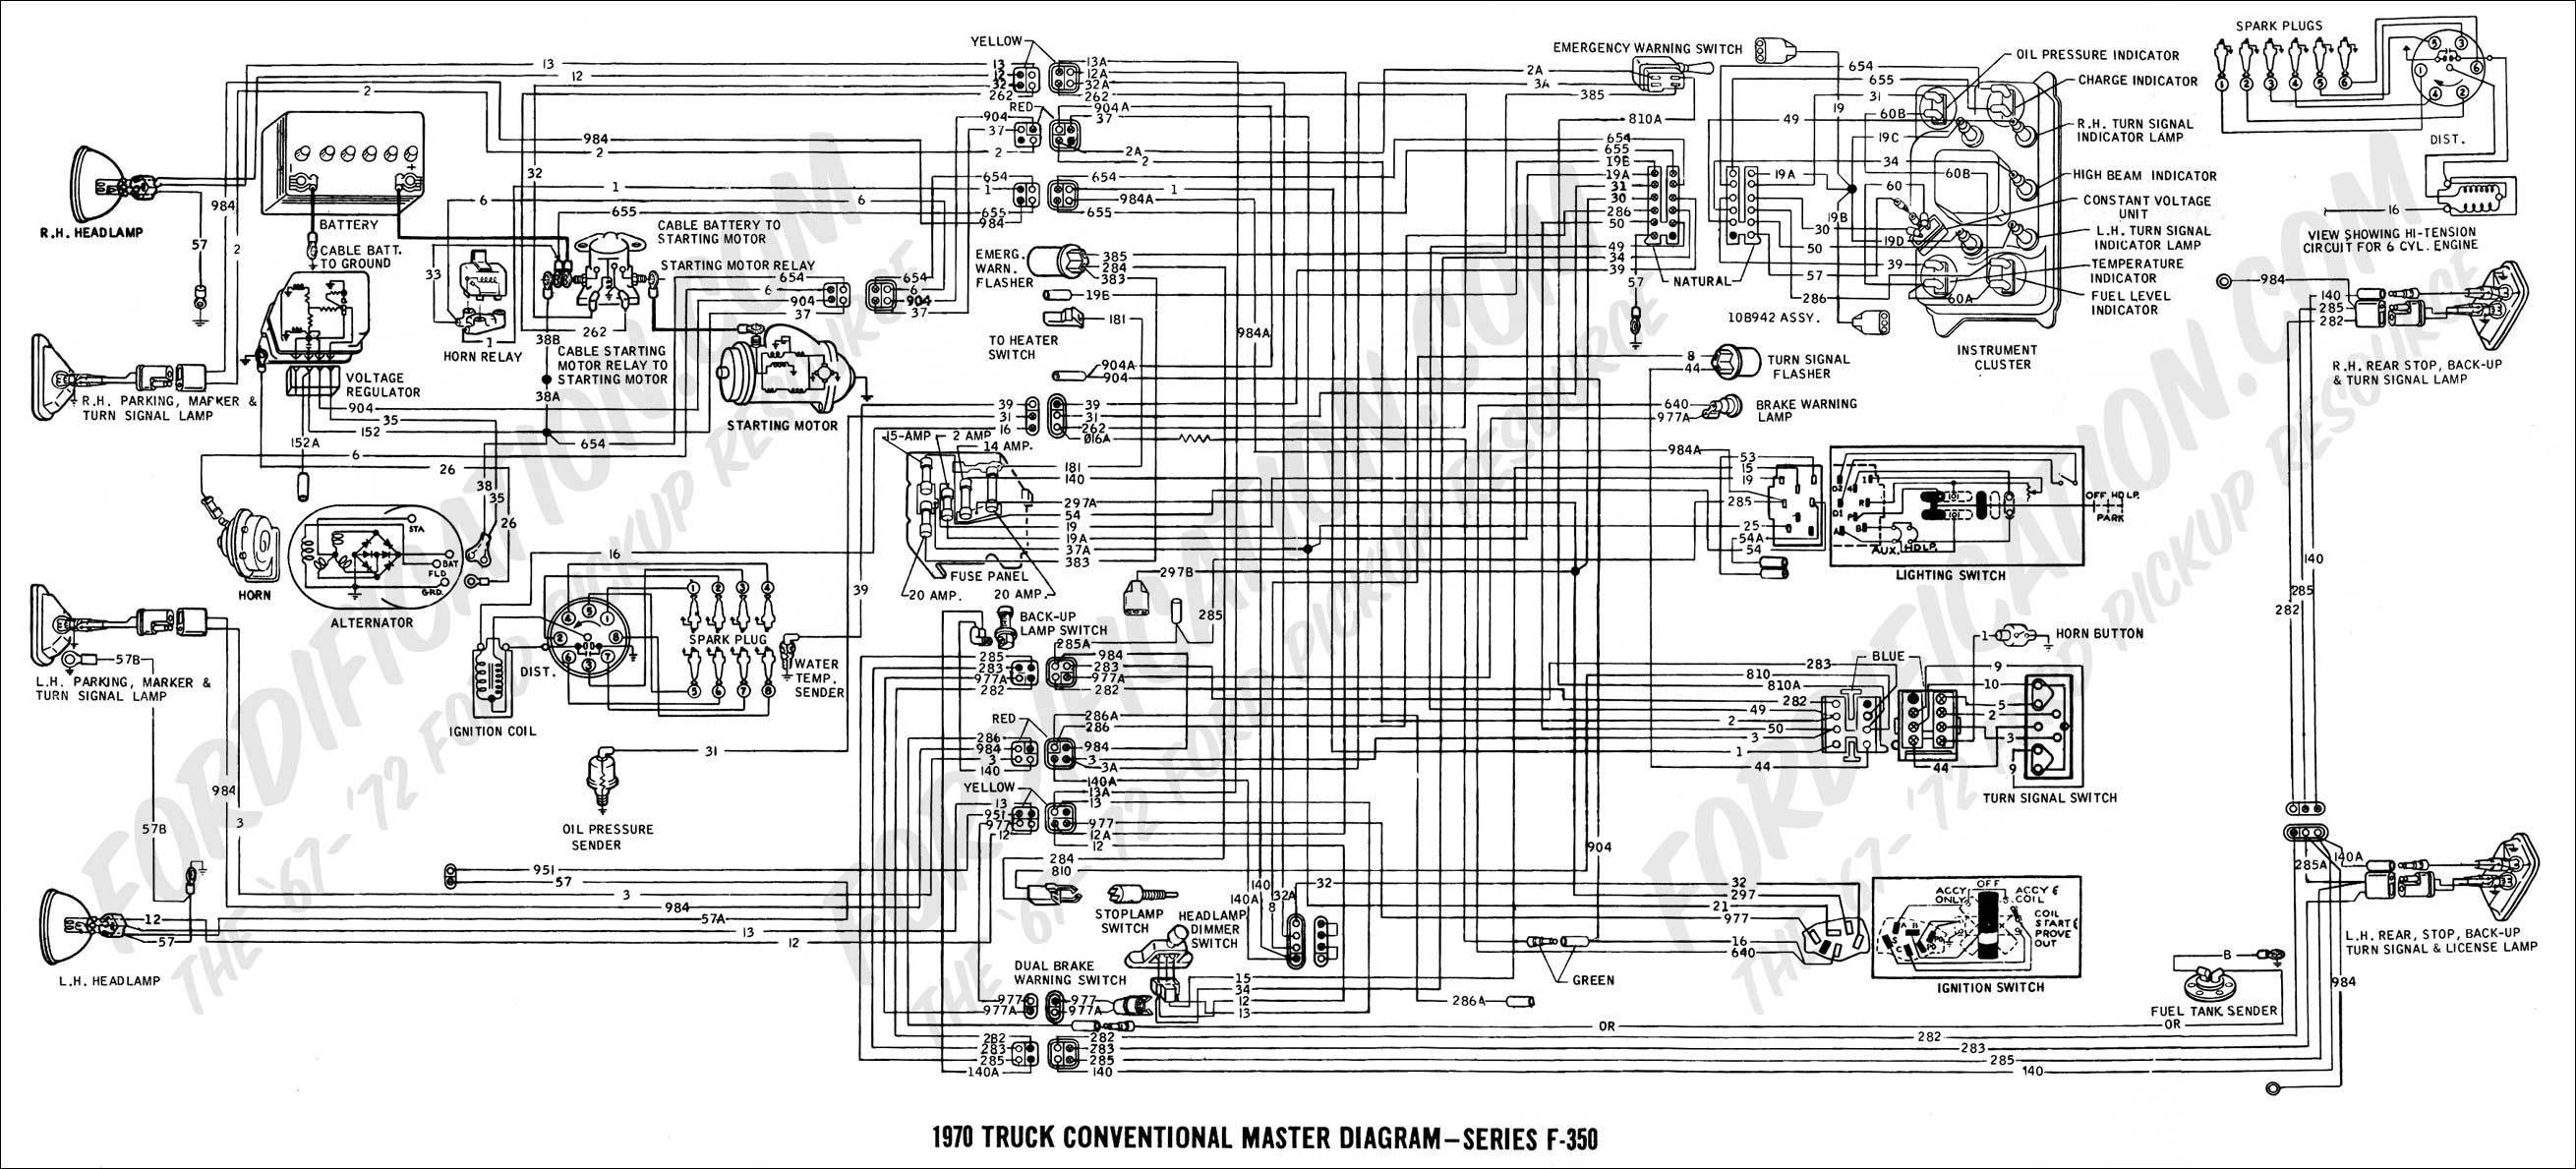 94 ford Ranger Engine Diagram 94 ford F350 Wiring Diagram Wiring Diagram Pass Of 94 ford Ranger Engine Diagram Mercruiser 5 0 Wiring Diagram ford Wiring Diagram Pass